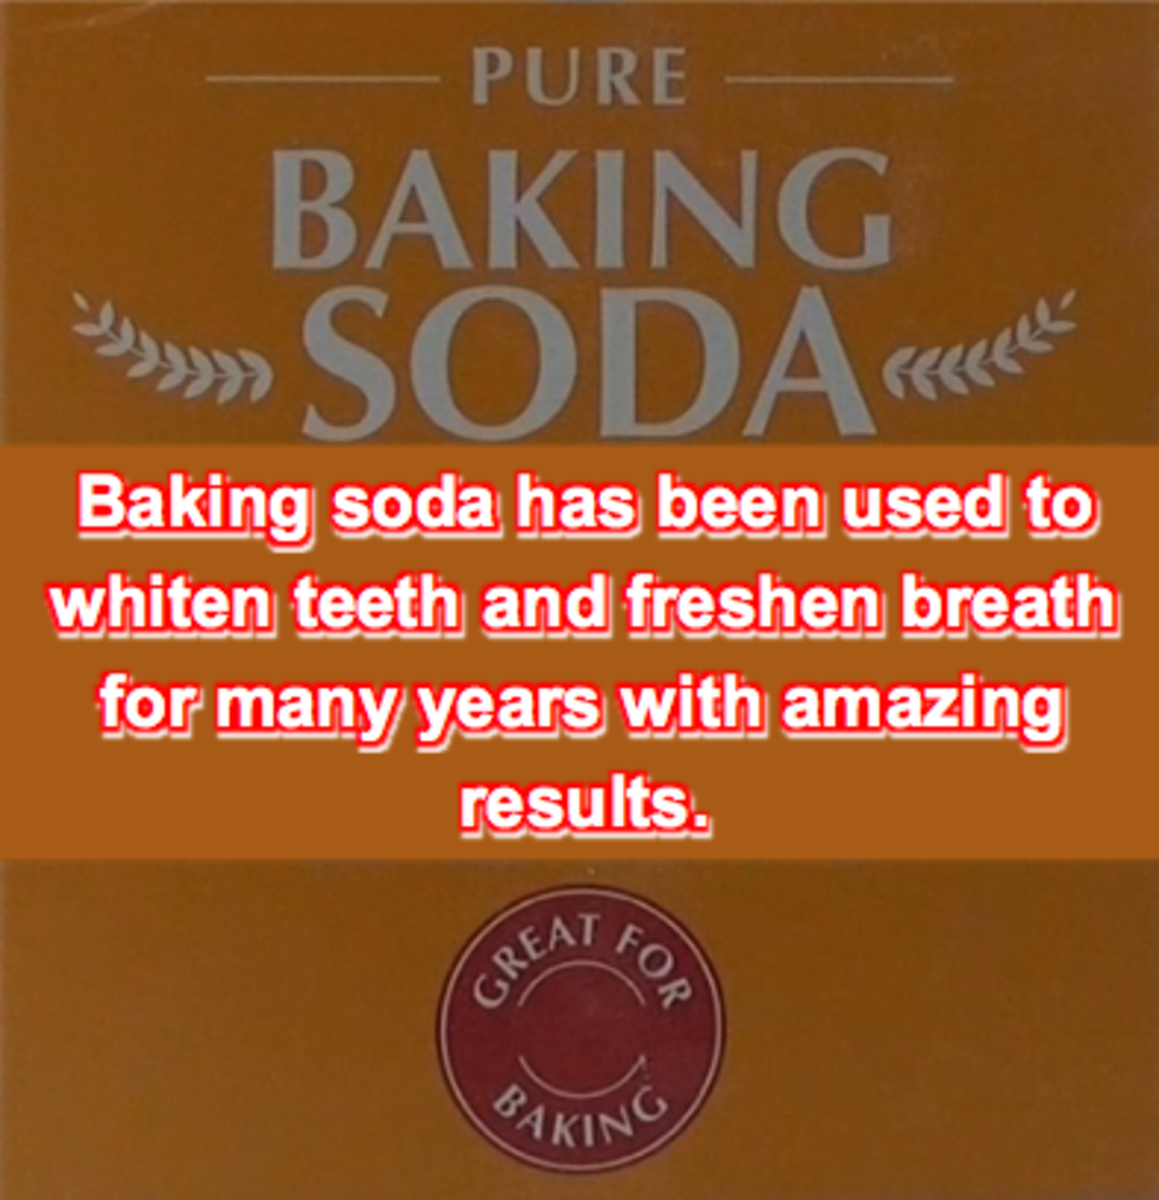 Baking soda has been used to whiten teeth and freshen breath for many years with amazing results.